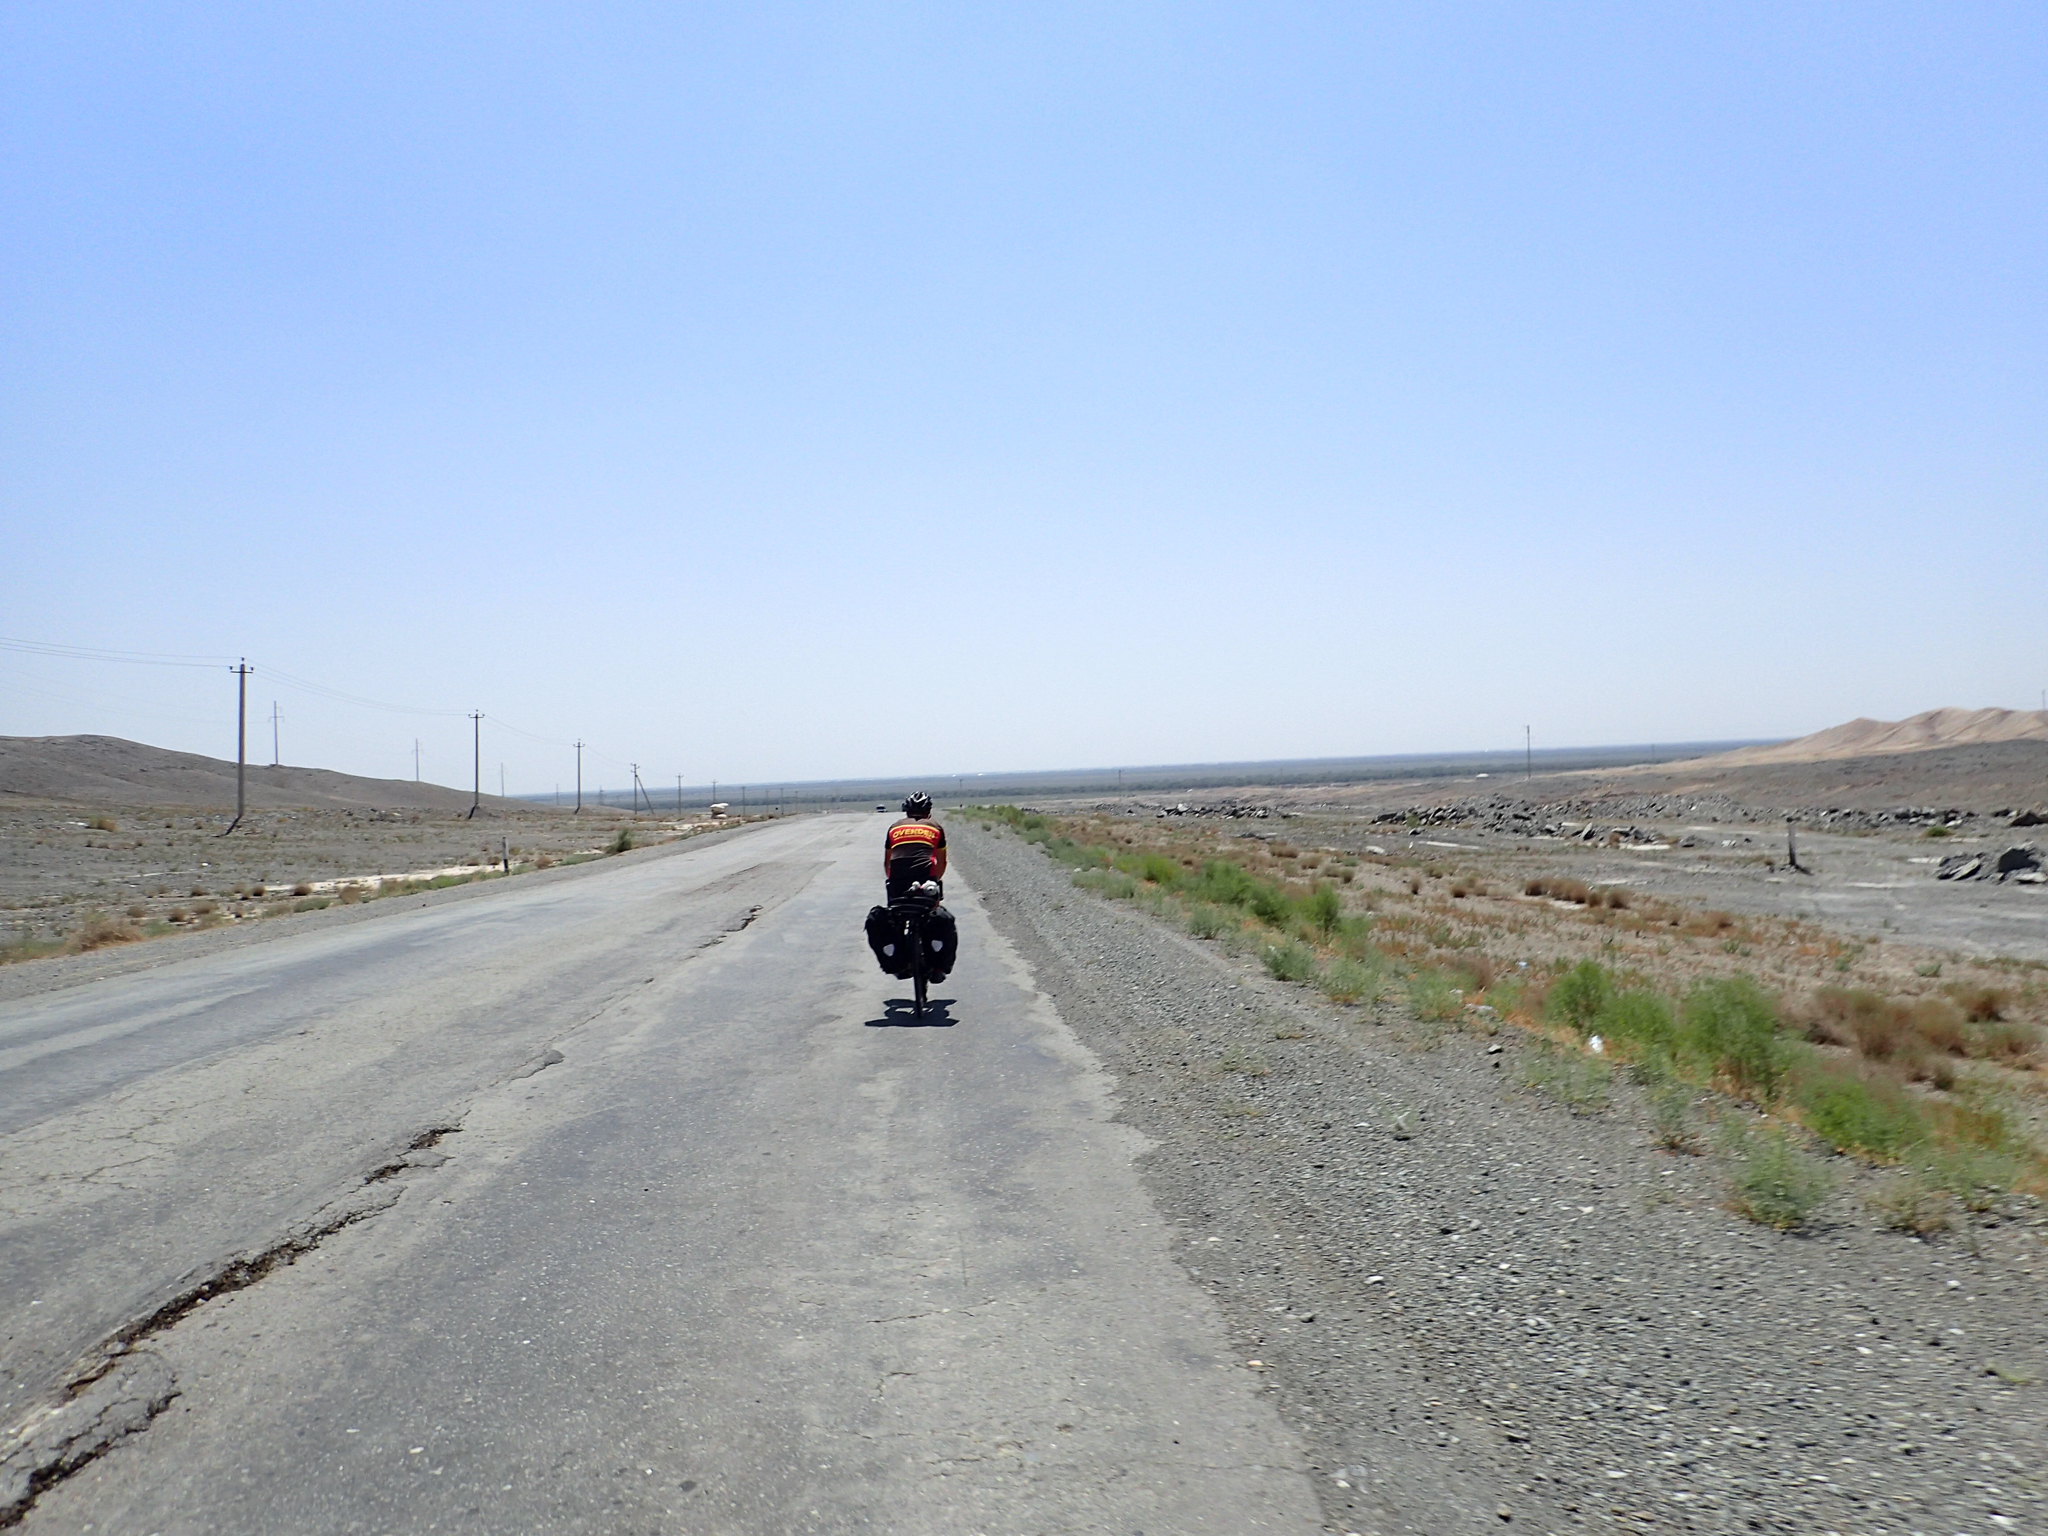 Long roads and small hills